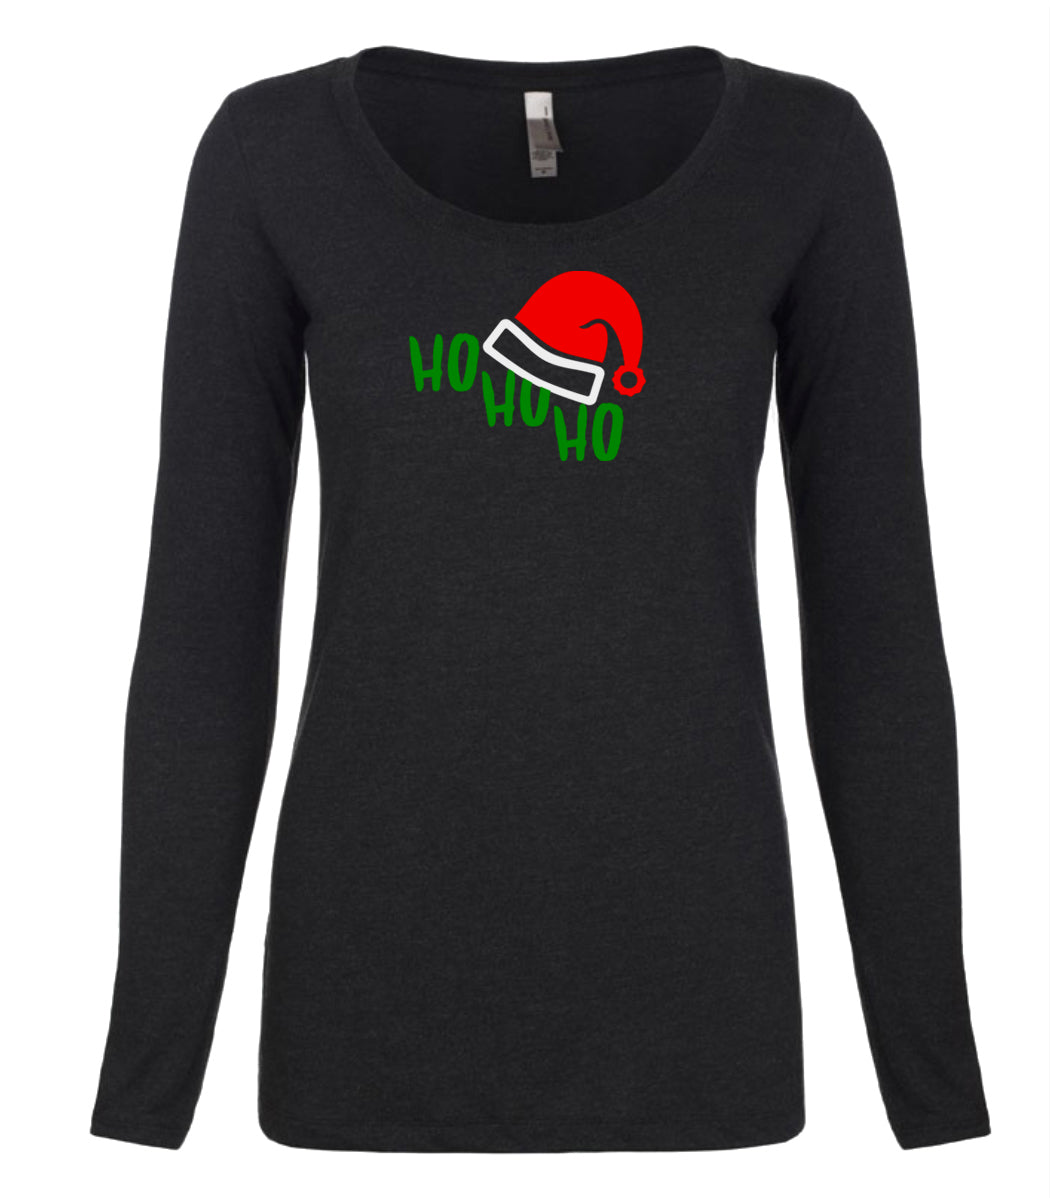 black ho ho ho long sleeve women's Christmas t shirt